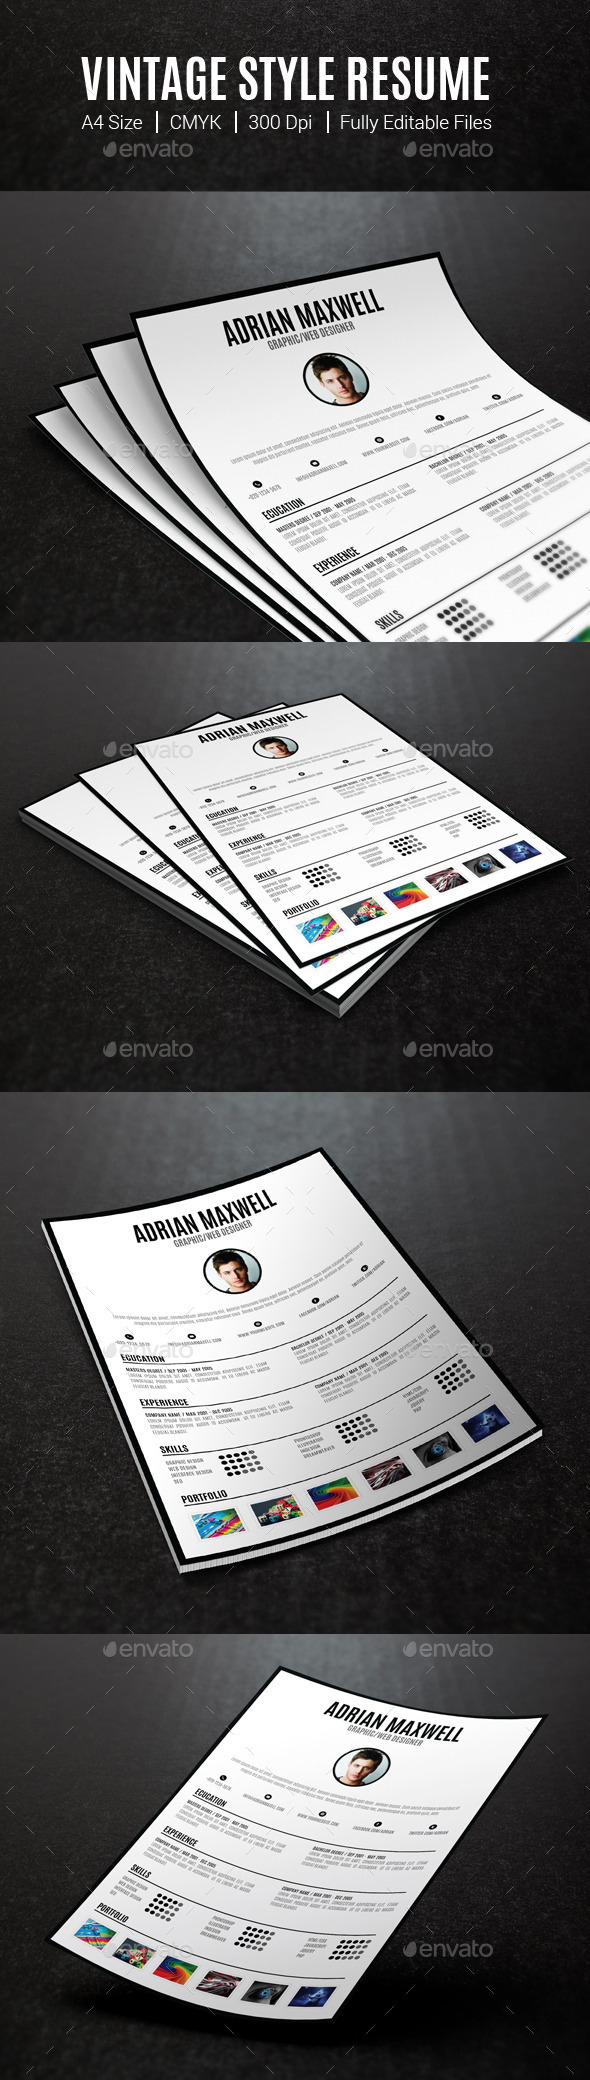 Vintage Style Resume - Resumes Stationery